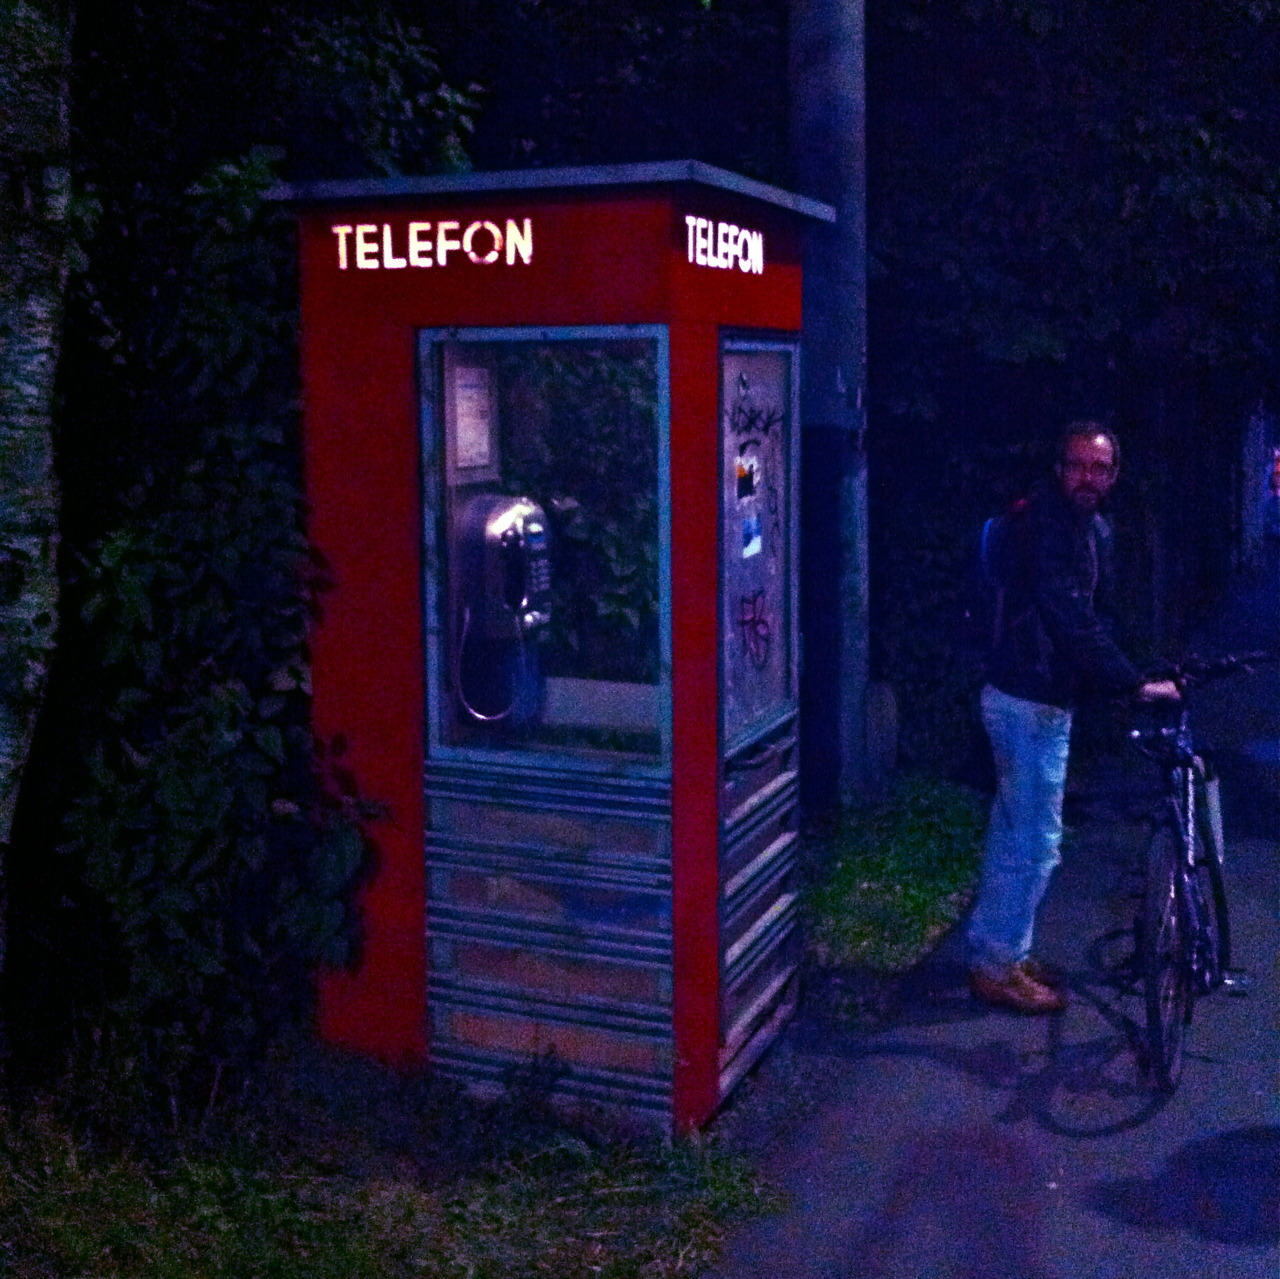 The last phone booth in Oslo.